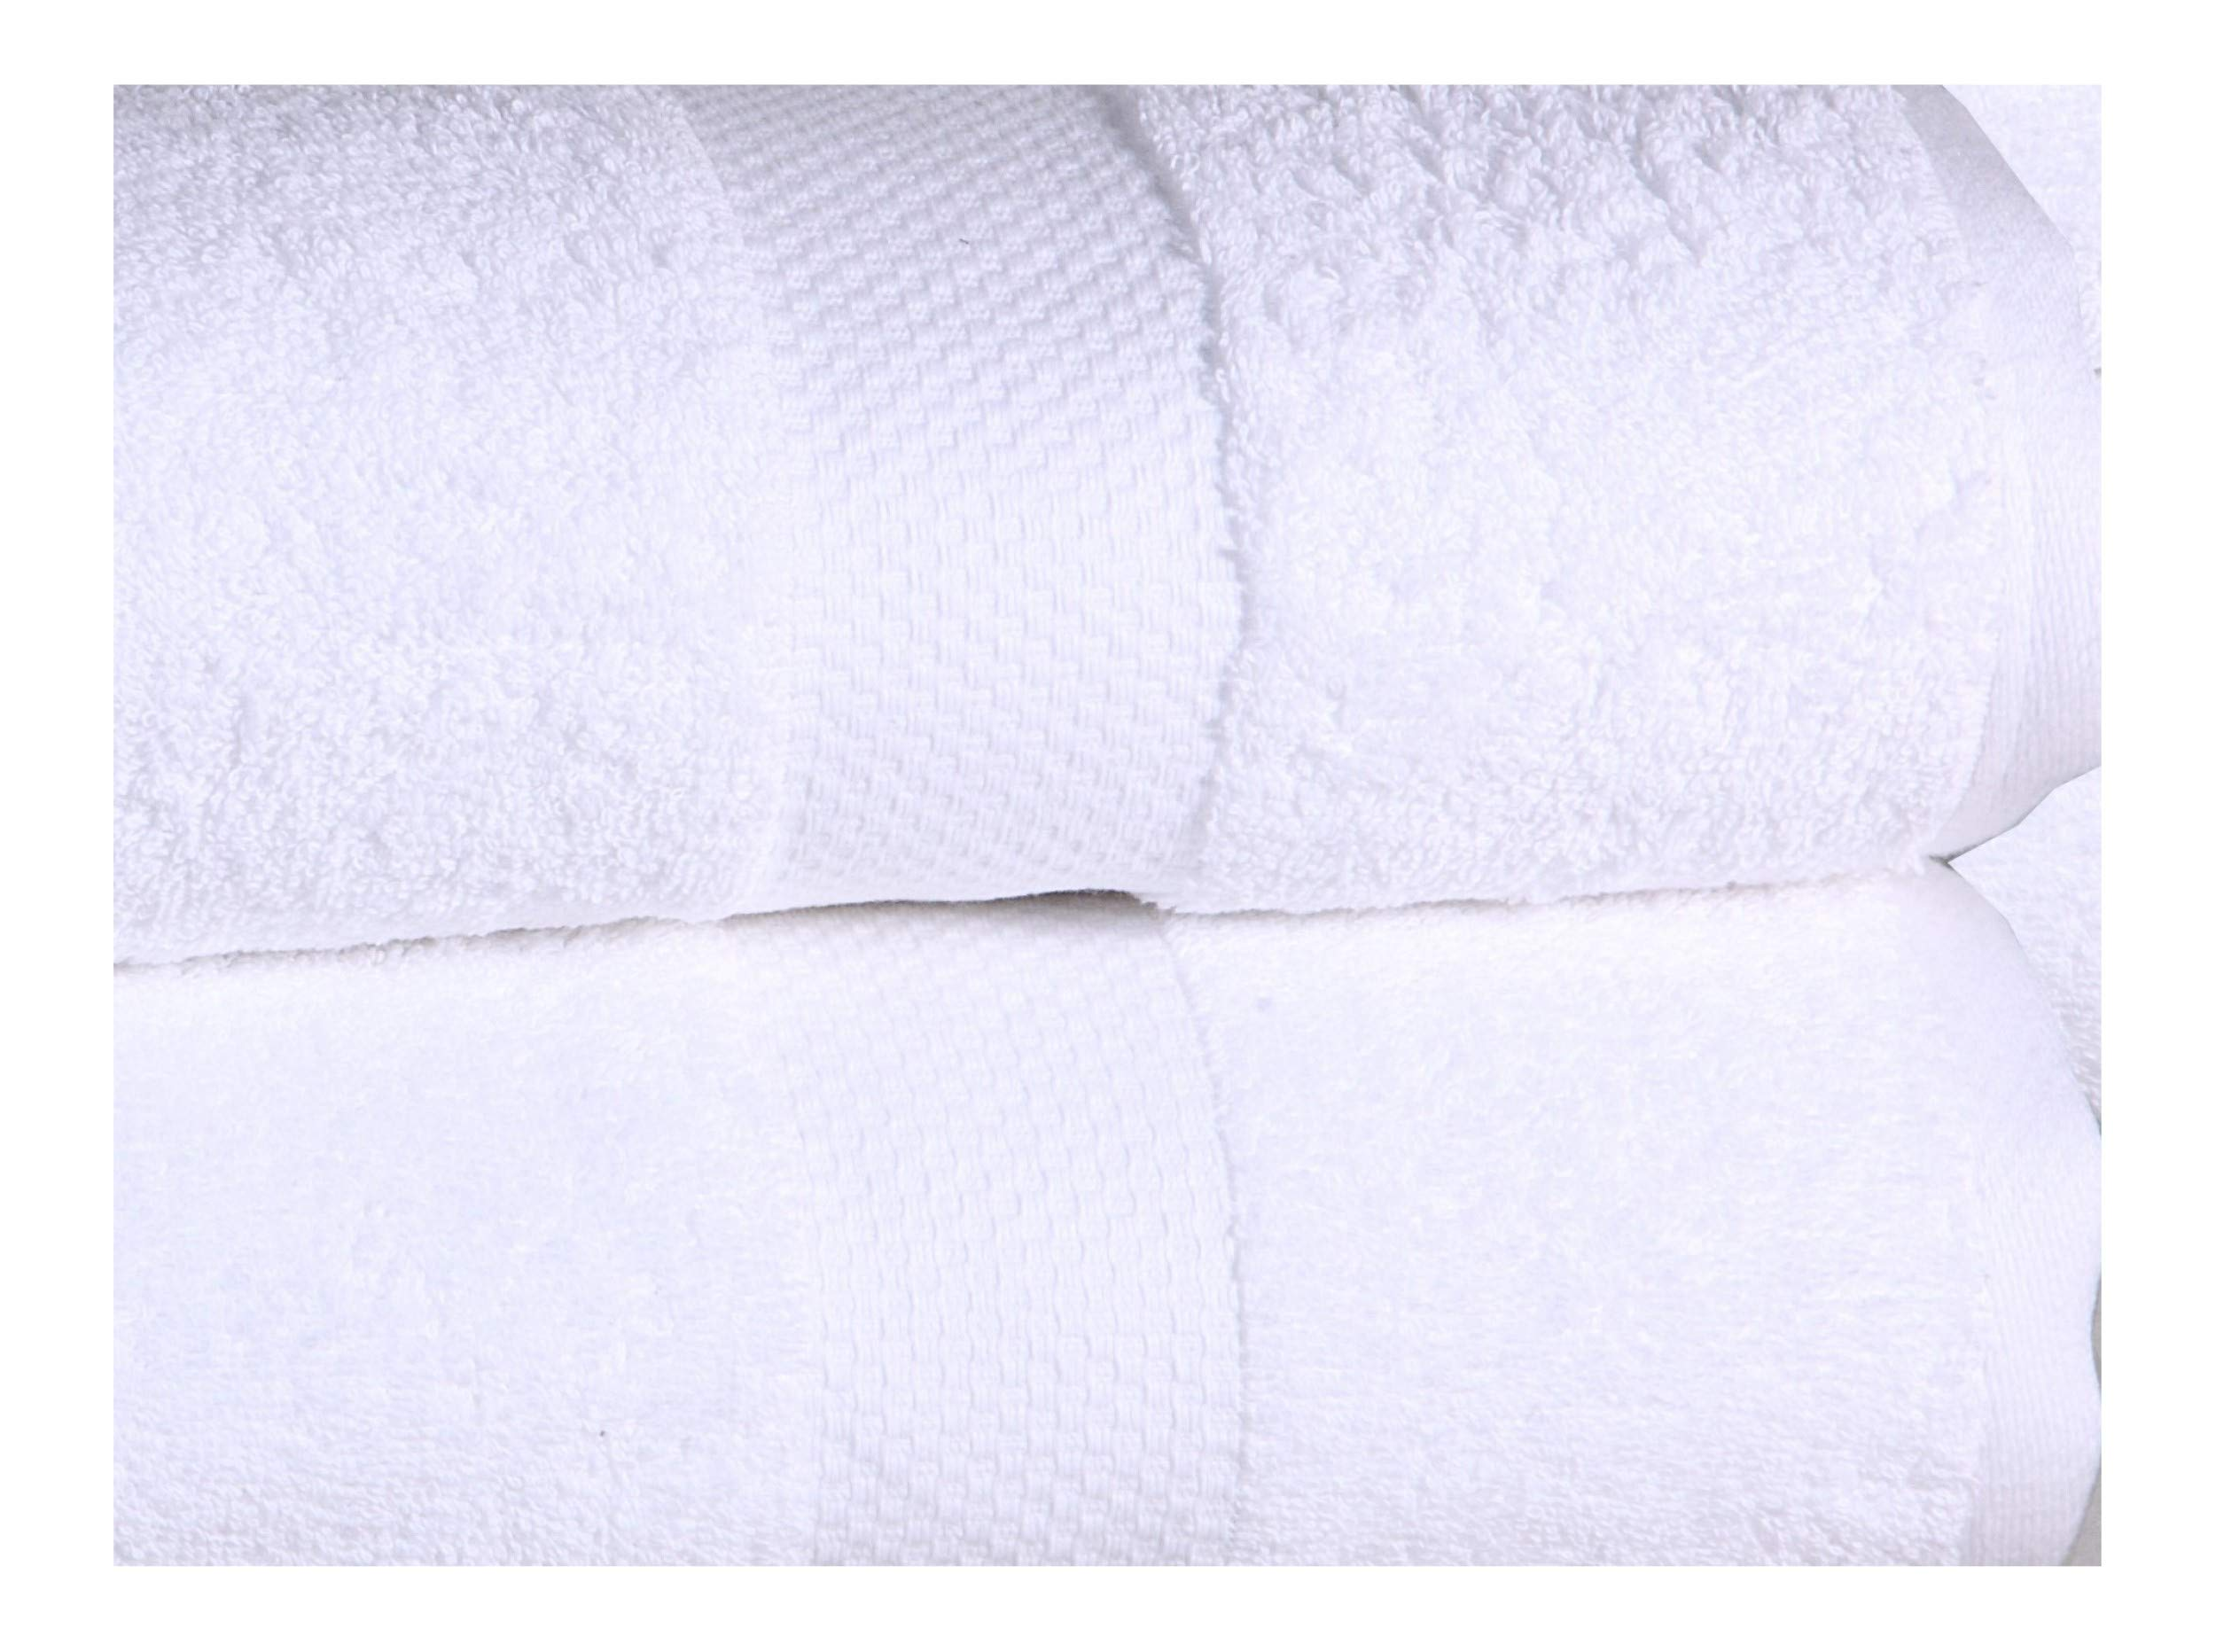 ISABELLA CROMWELL 100% Cotton 4 Oversized Bath Sheets Low Twist Extra Large Soft Highly Absorbent Luxury Hotel Spa Quality Towels - White